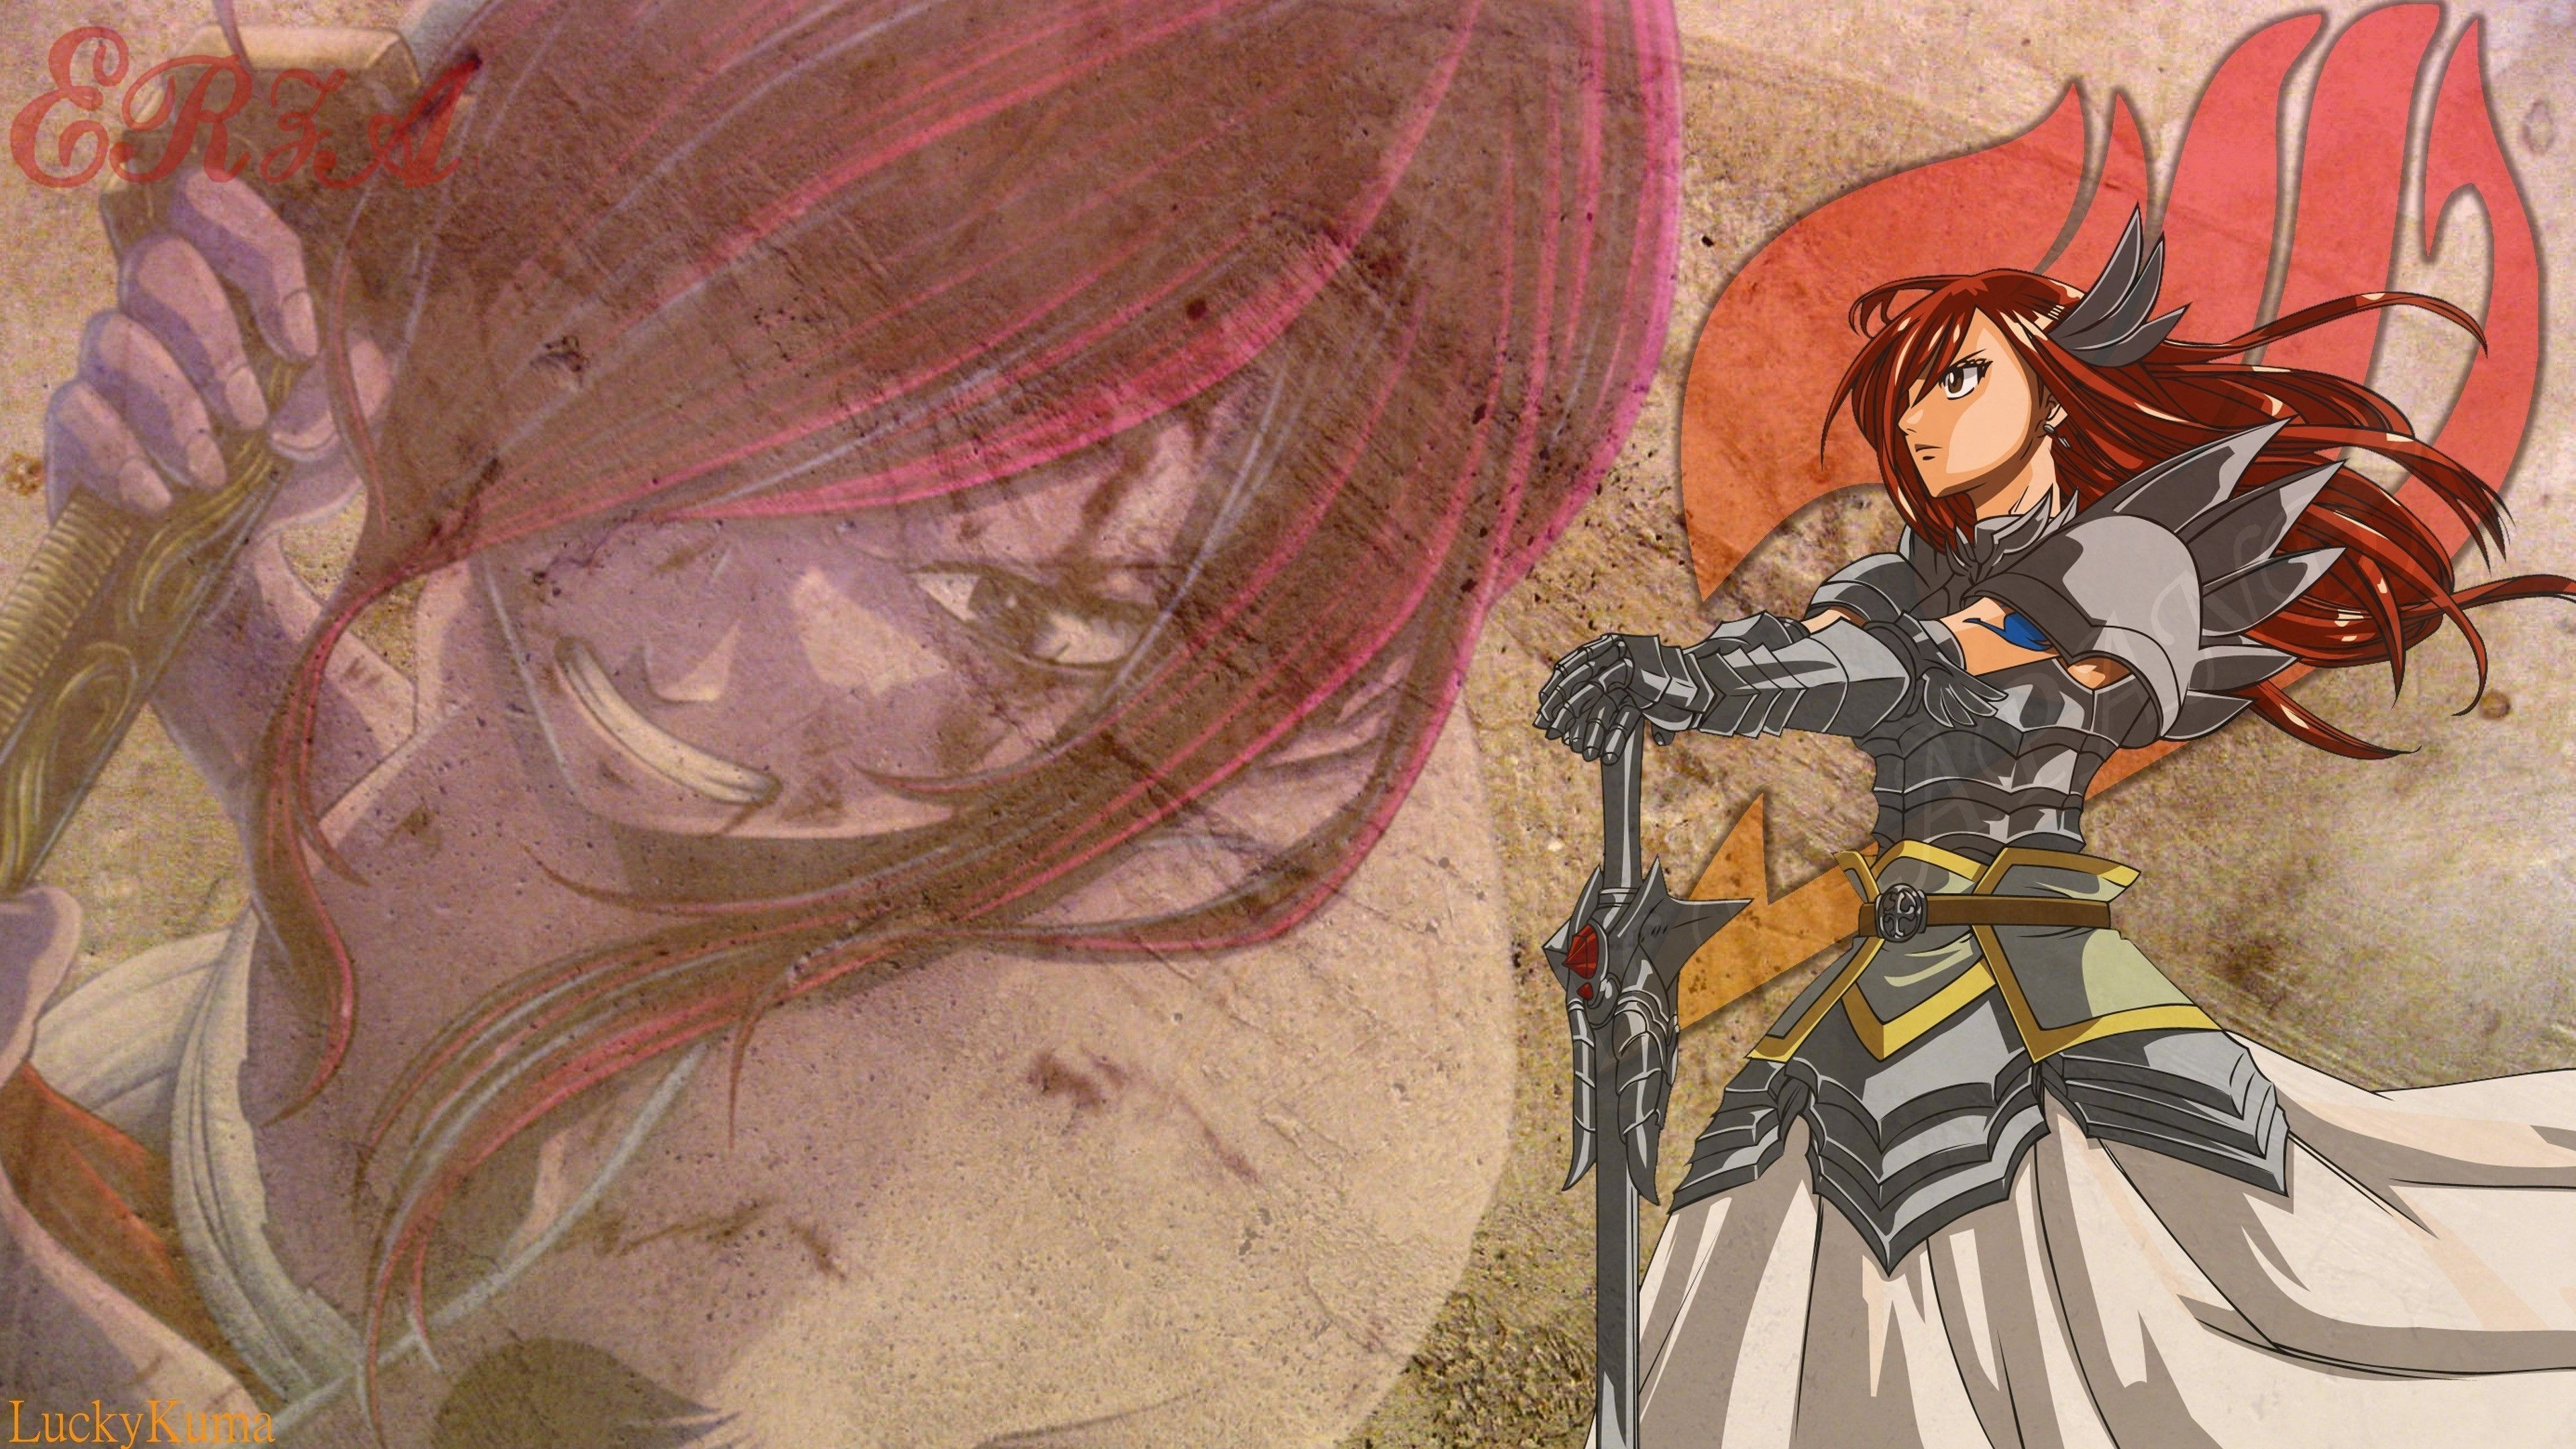 3840x2160 wallpaper.wiki-HD-Backgrounds-Erza-Scarlet-PIC-WPB006248